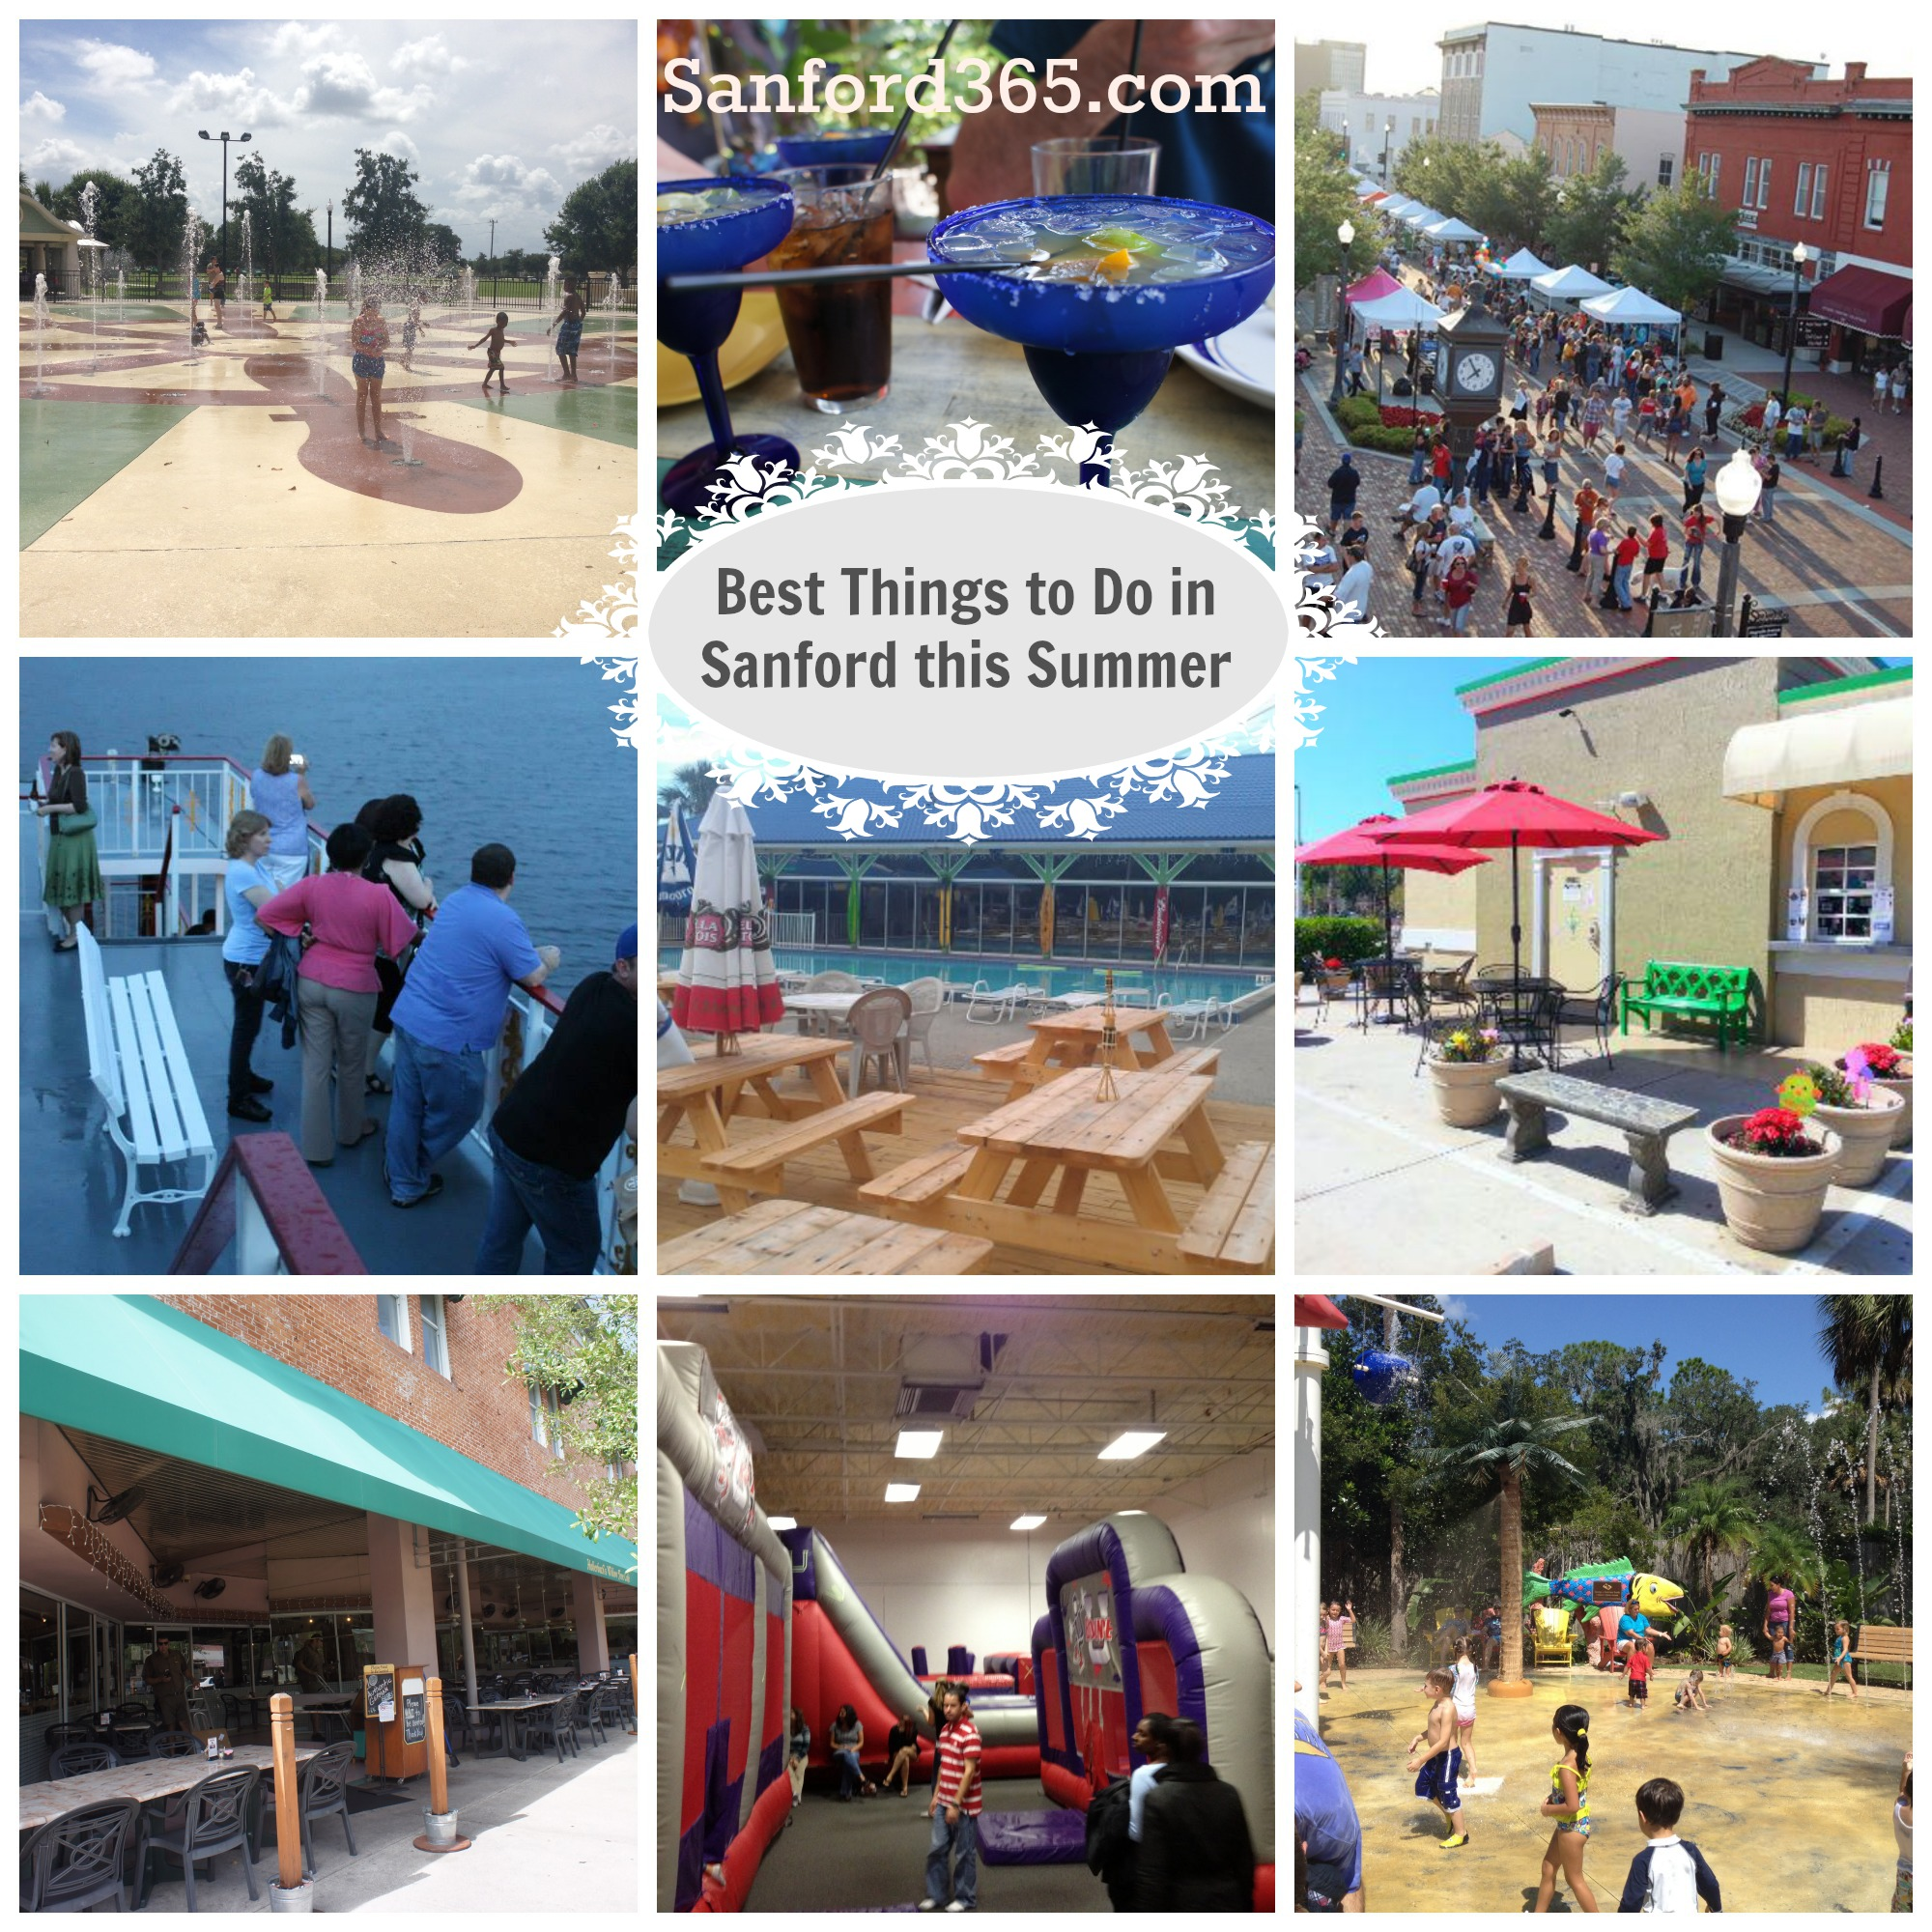 Top 11 Things to Do in Sanford FL in the Summer